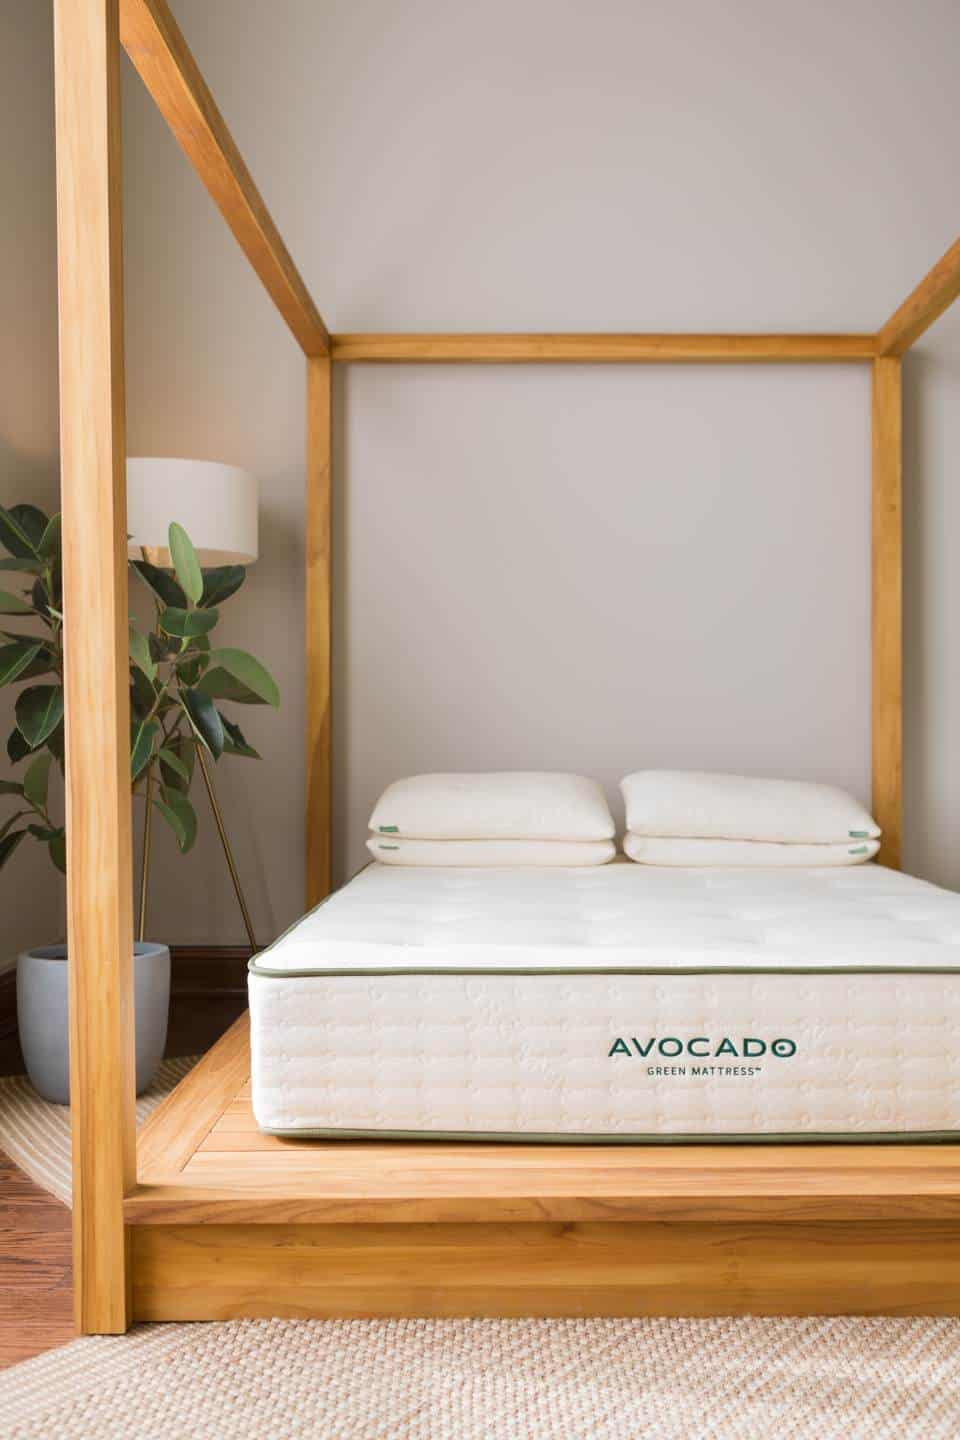 Avocado RV mattress on bed frame